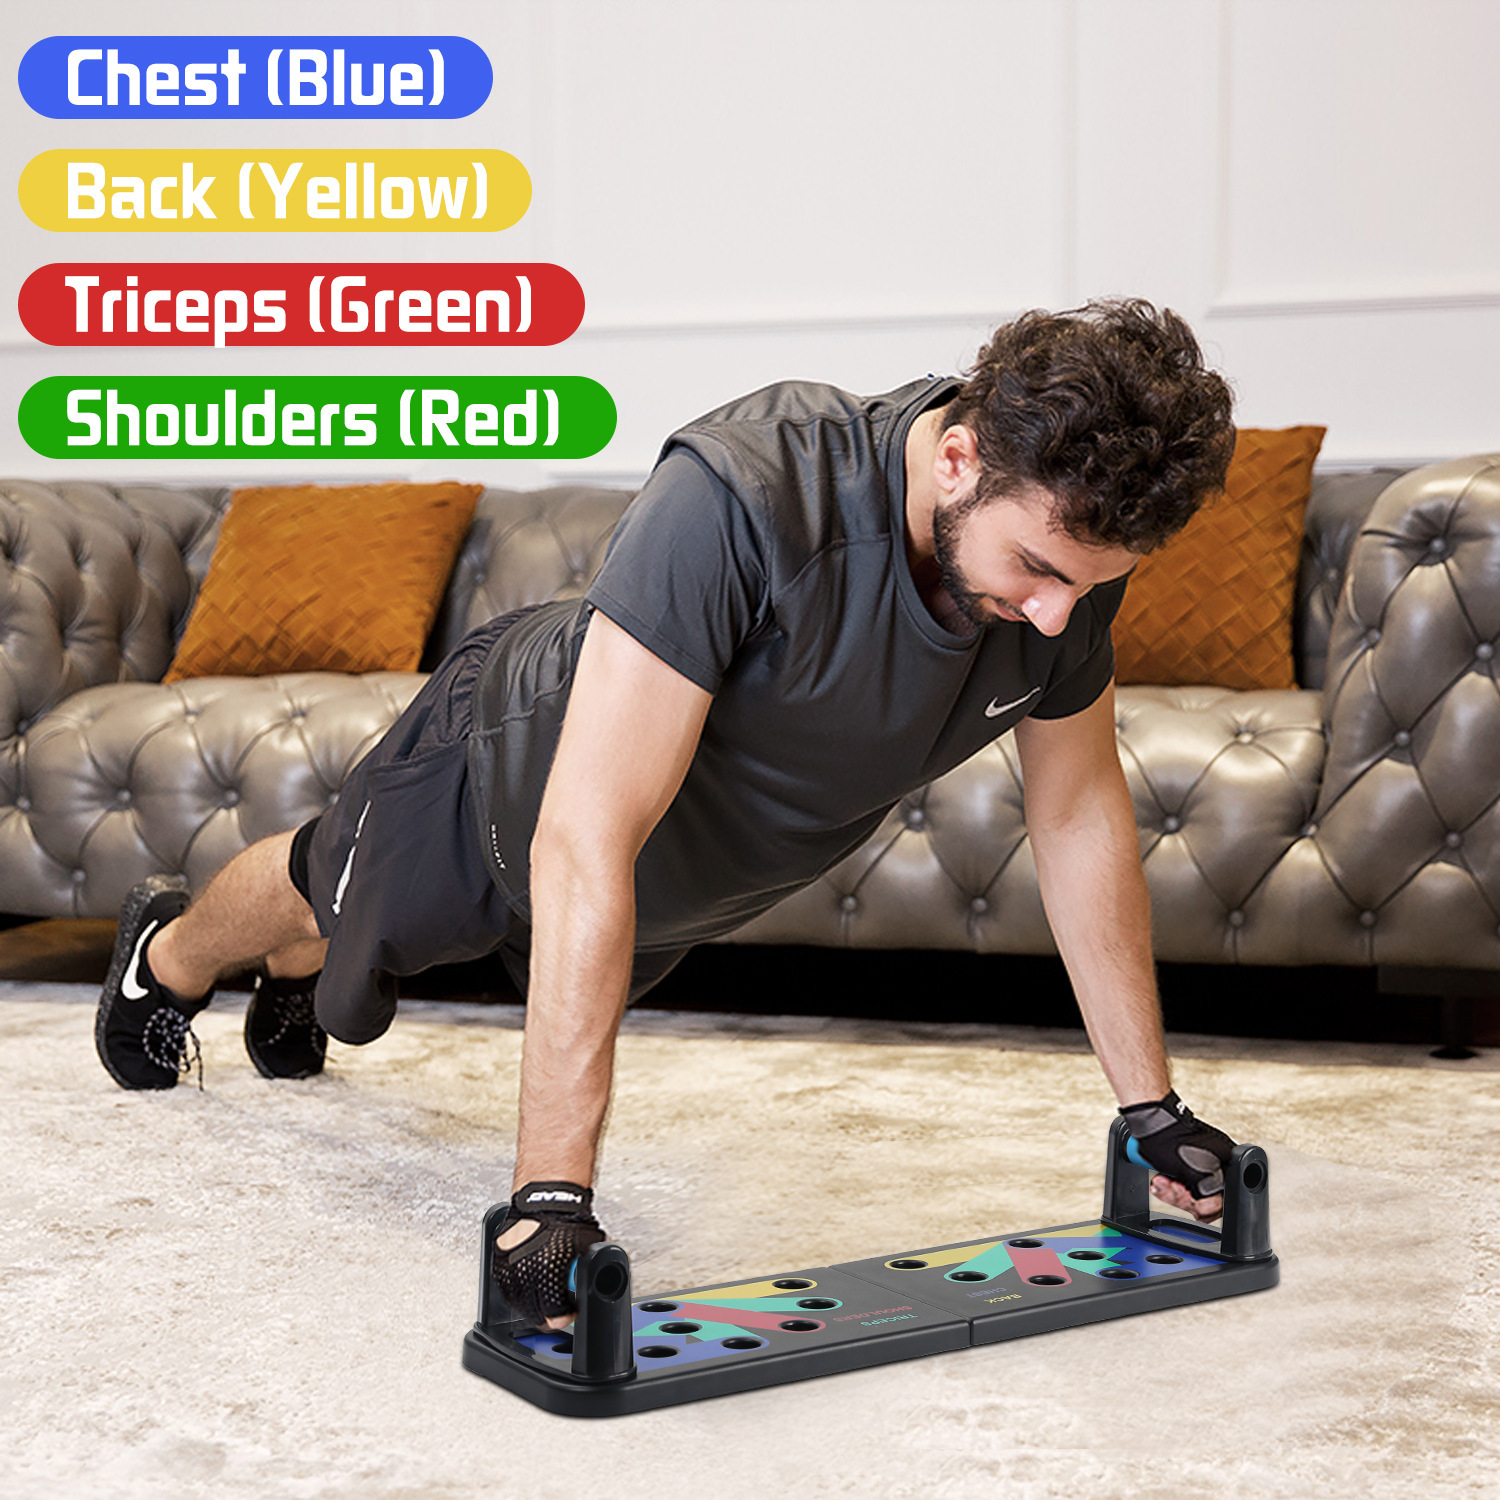 Strength Board Muscle Board Push Up Plate Home Fitness Equipment Body Building Exercise Tools for Men and Women KUNBIO Push Up Board